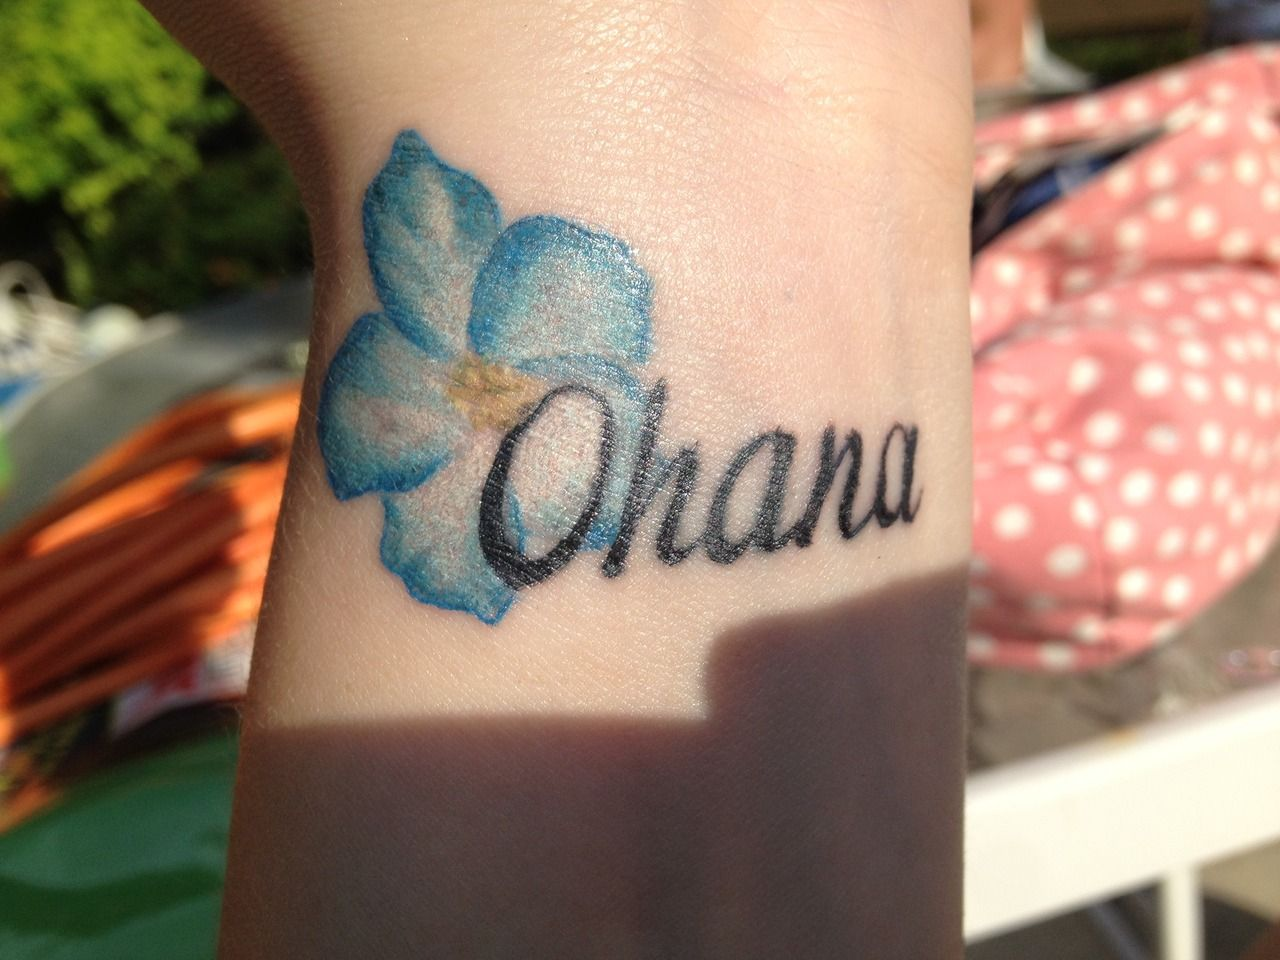 Pin By Shannon Taber On Tattoos That I Like Tattoos Disney